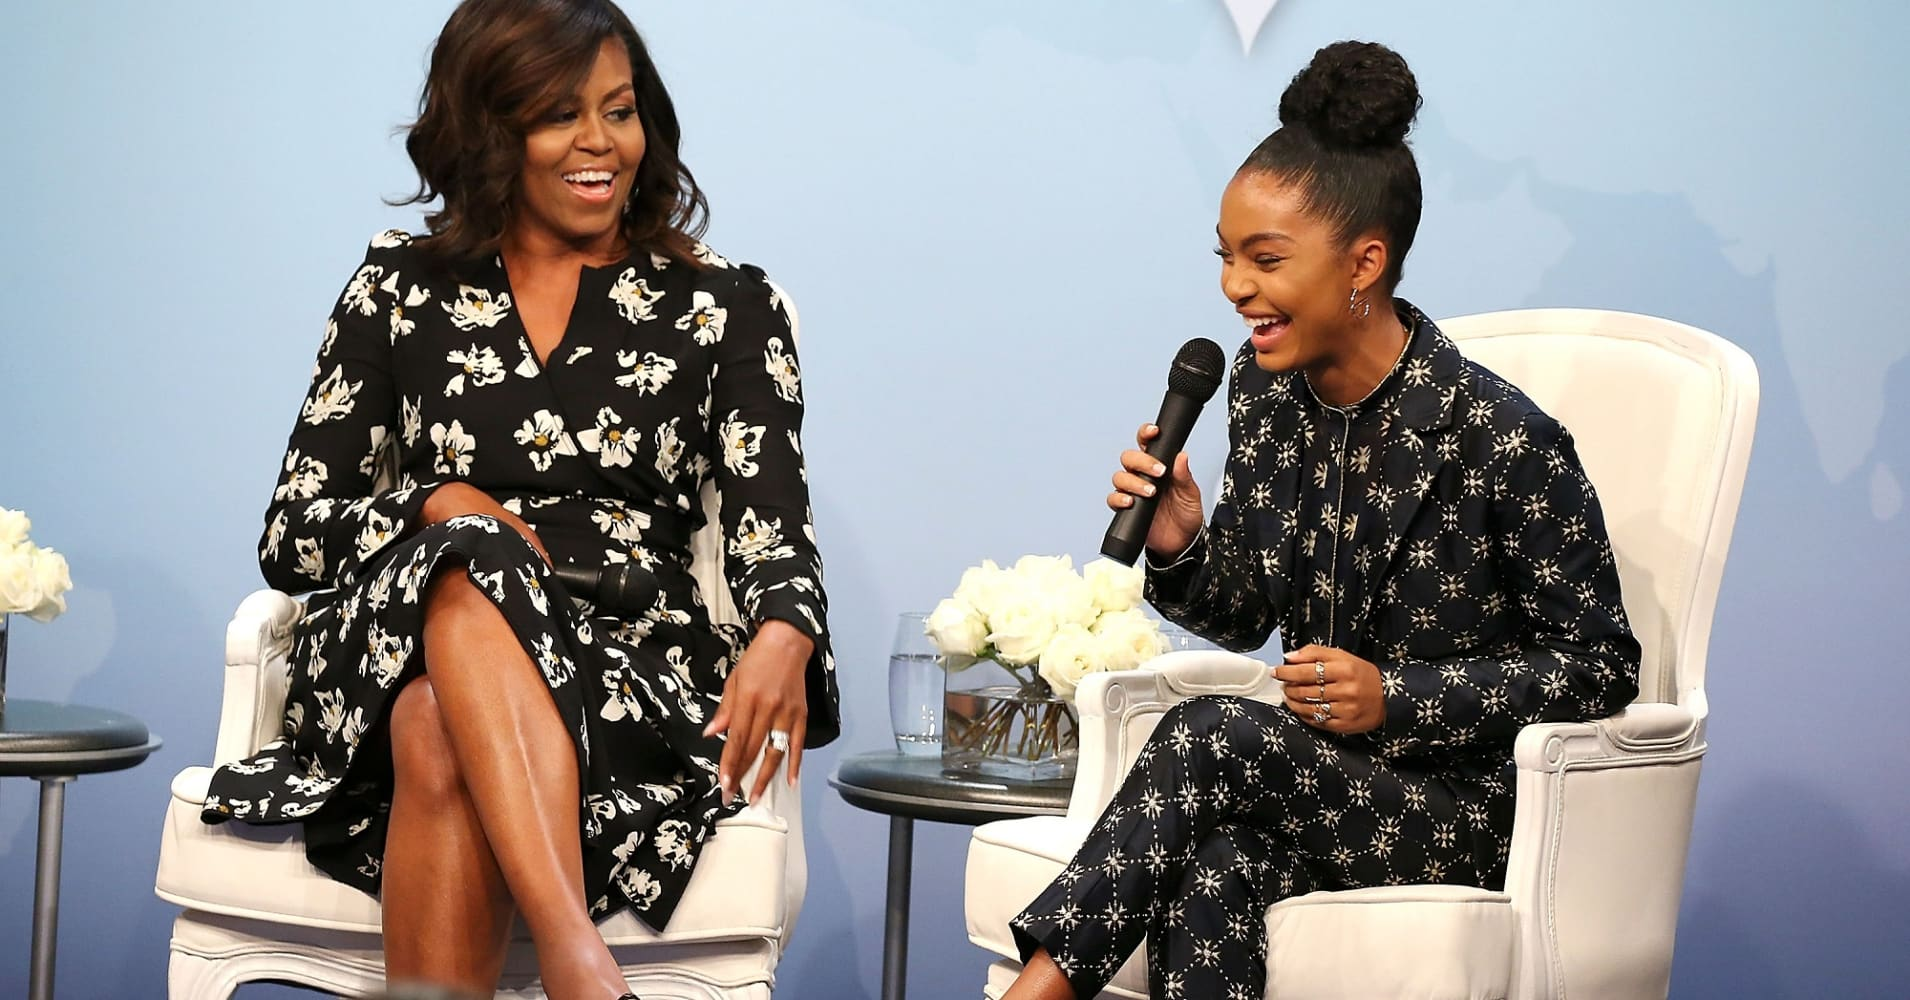 Michelle Obama and Yara Shahidi participate in panel discussion at Glamour Hosts 'A Brighter Future: A Global Conversation on Girls' Education.'